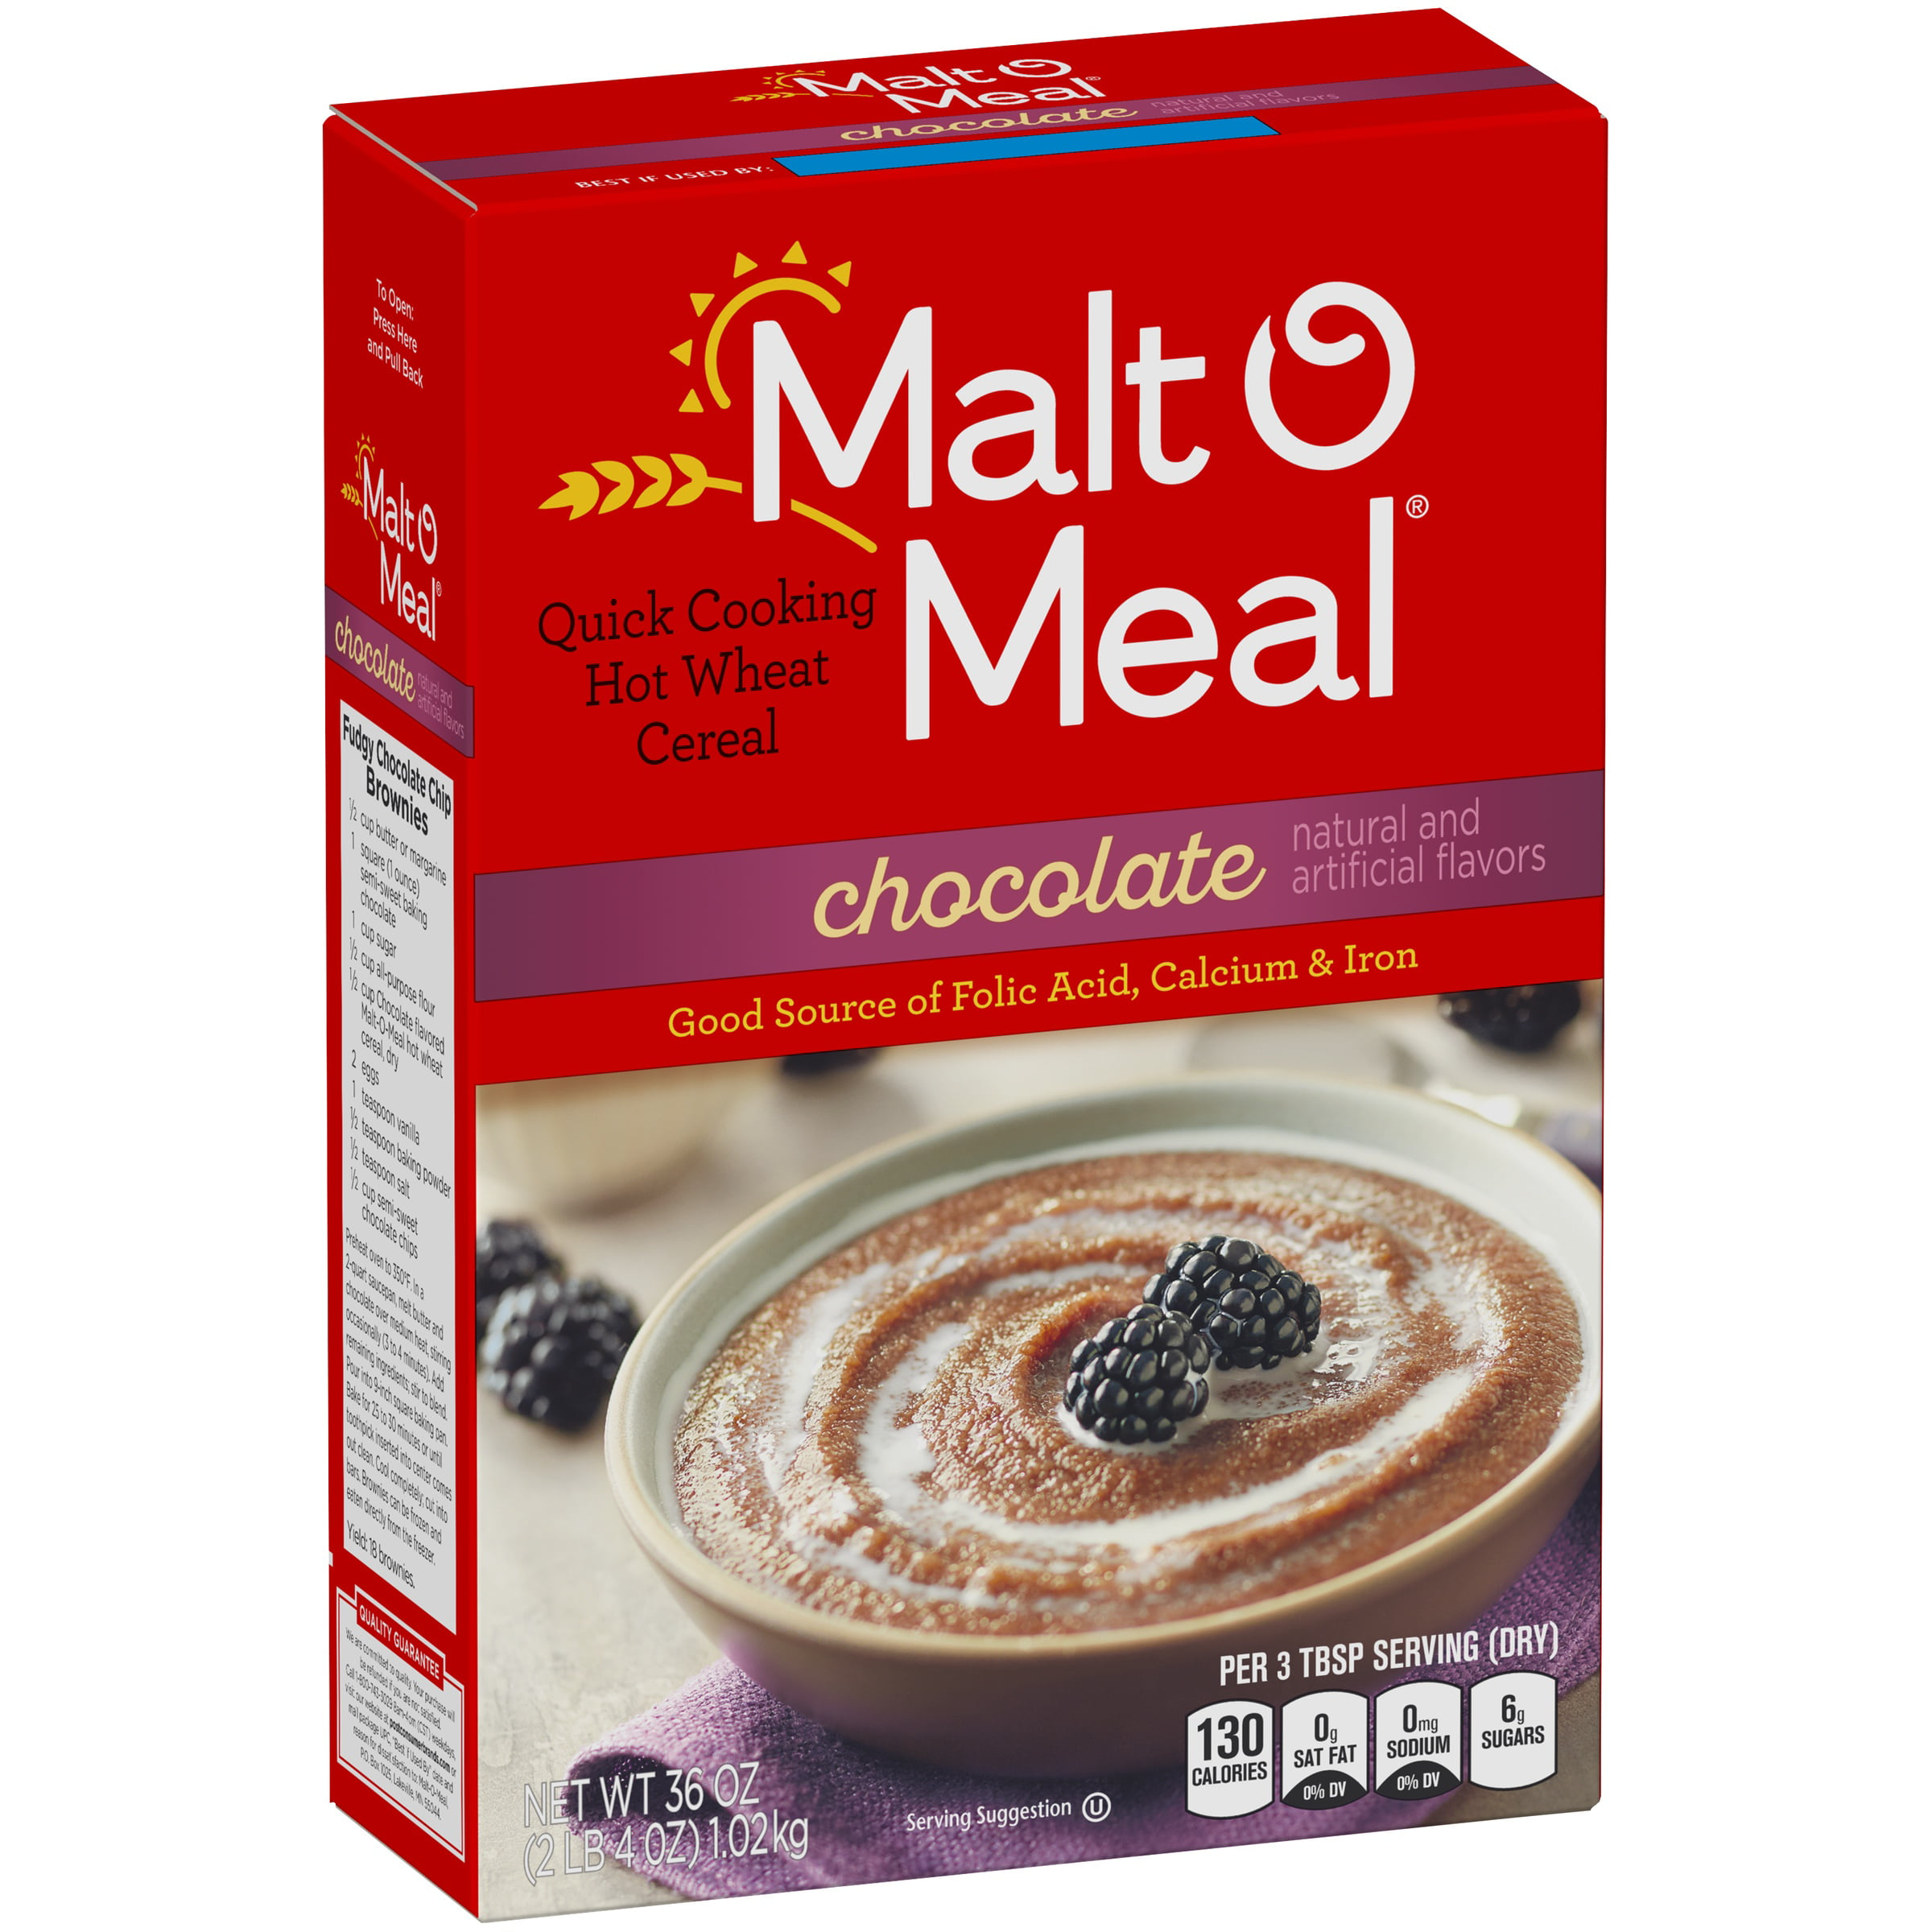 Malt-O-Meal Quick Cooking Wheat Hot Cereal, Chocolate, 36